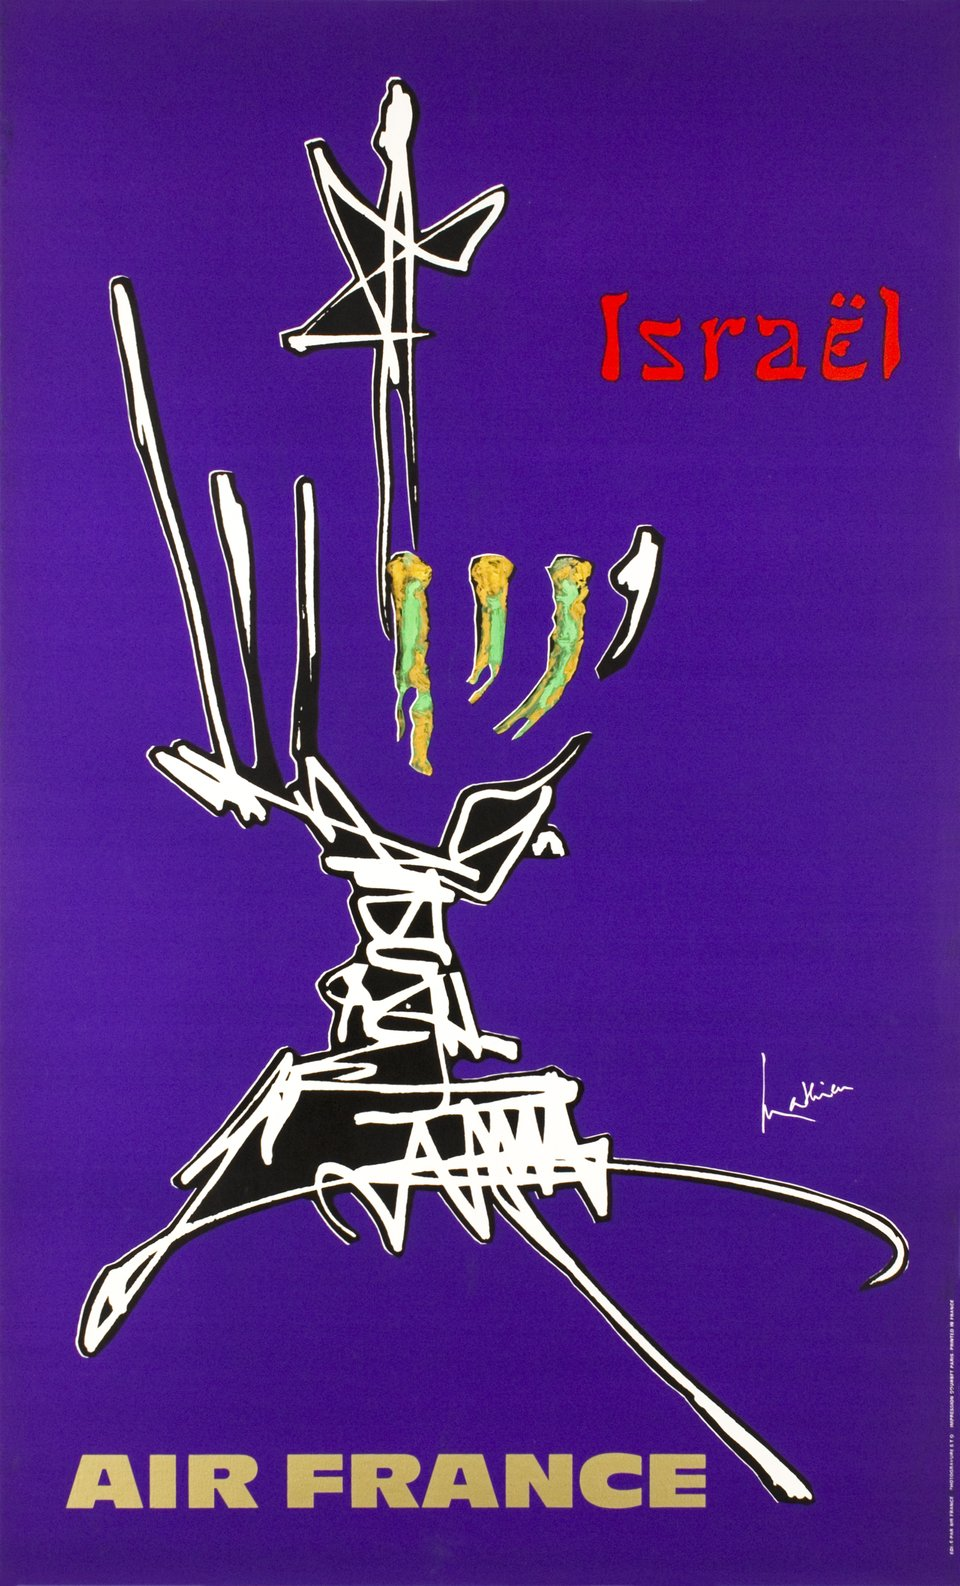 Air France, Israël – Vintage poster – Georges MATHIEU – 1968